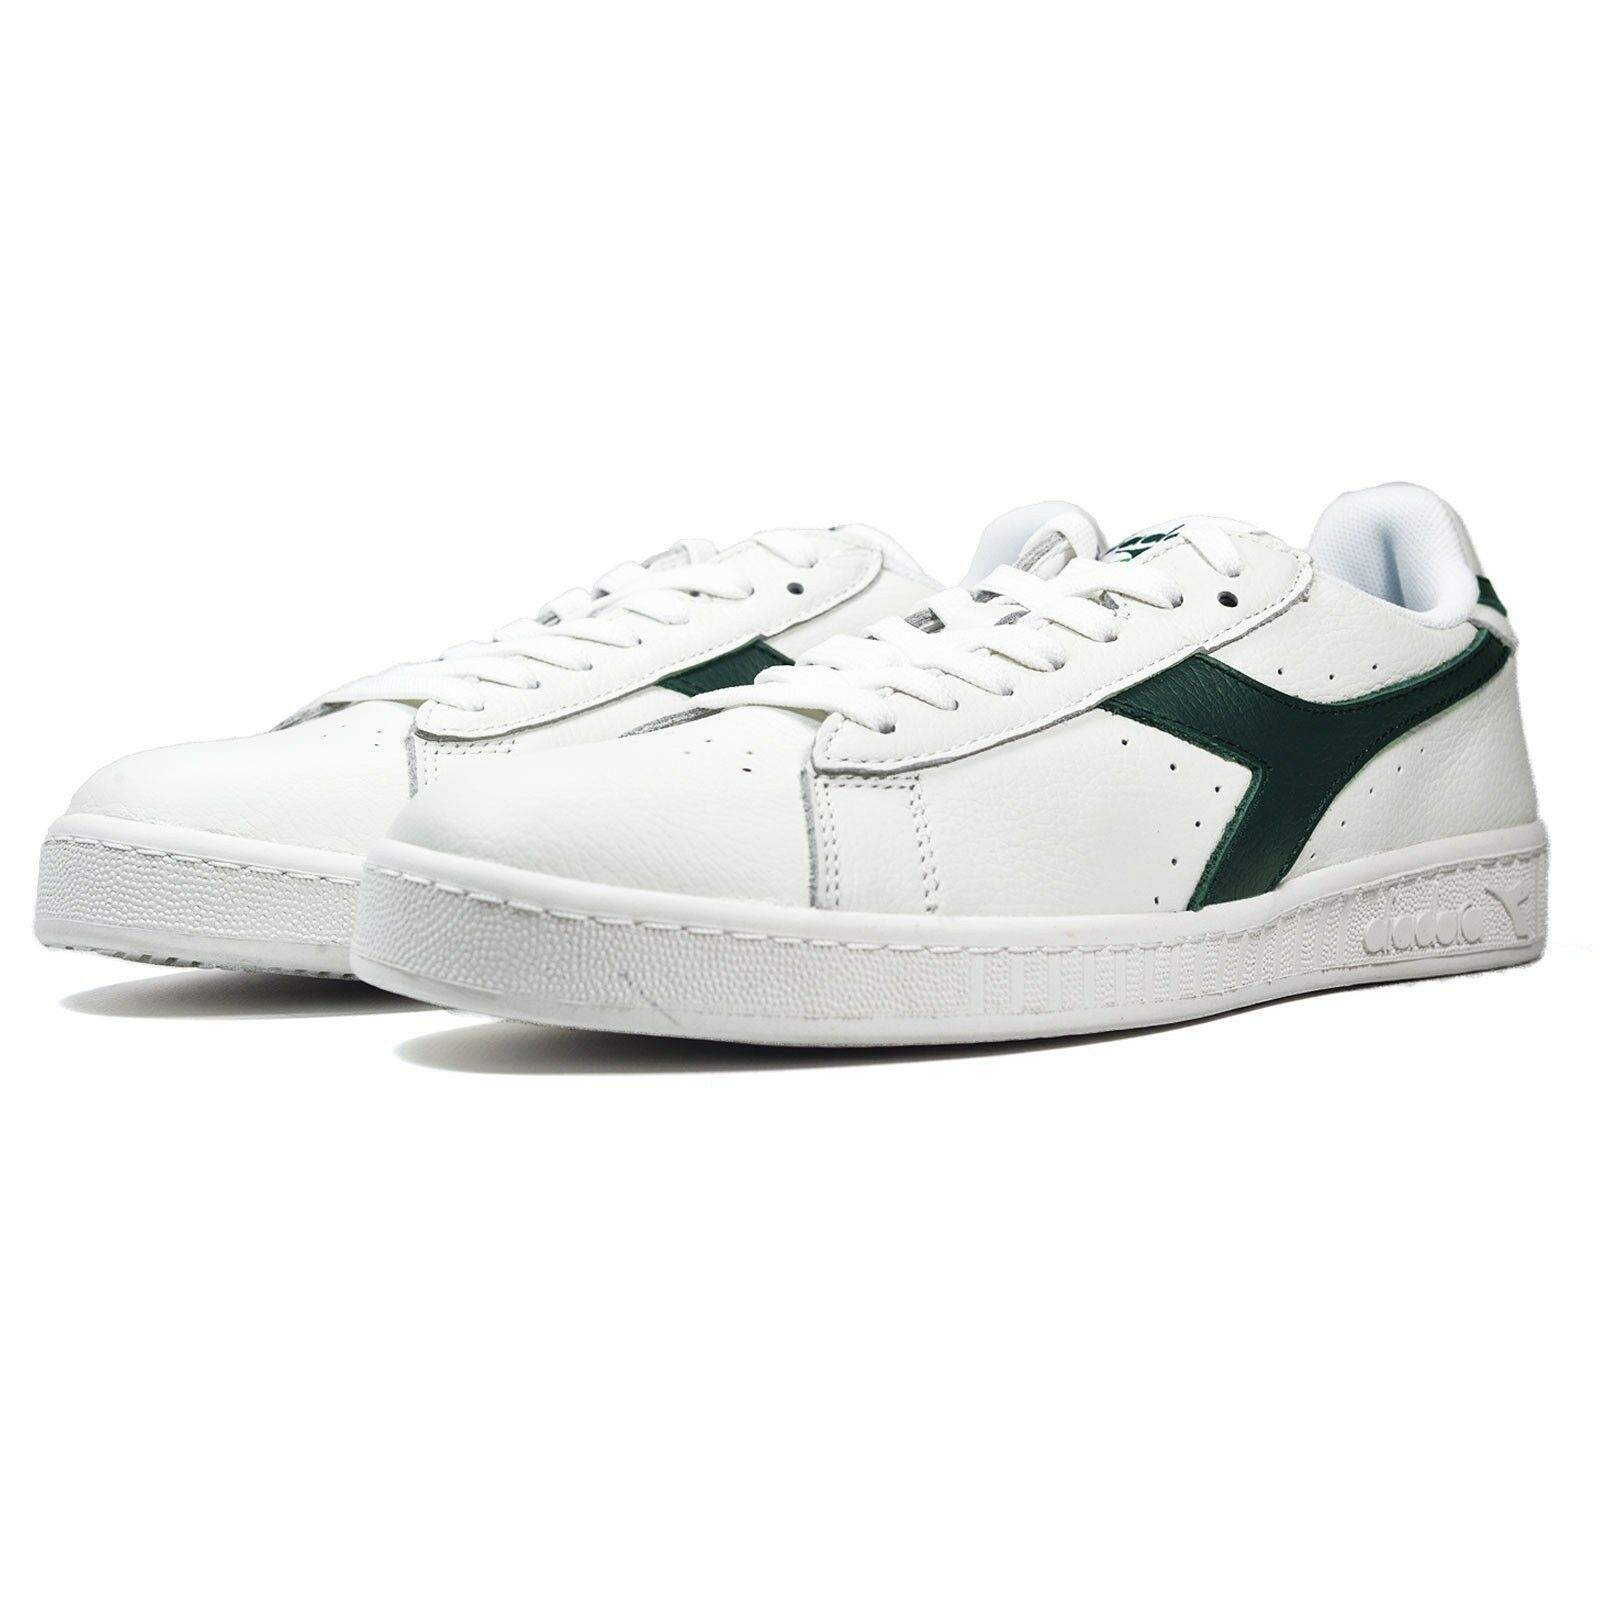 Men's Waxed Brand New Diadora Game L Low Waxed Men's Athletic Fashion Sneakers [C6646] bb663e